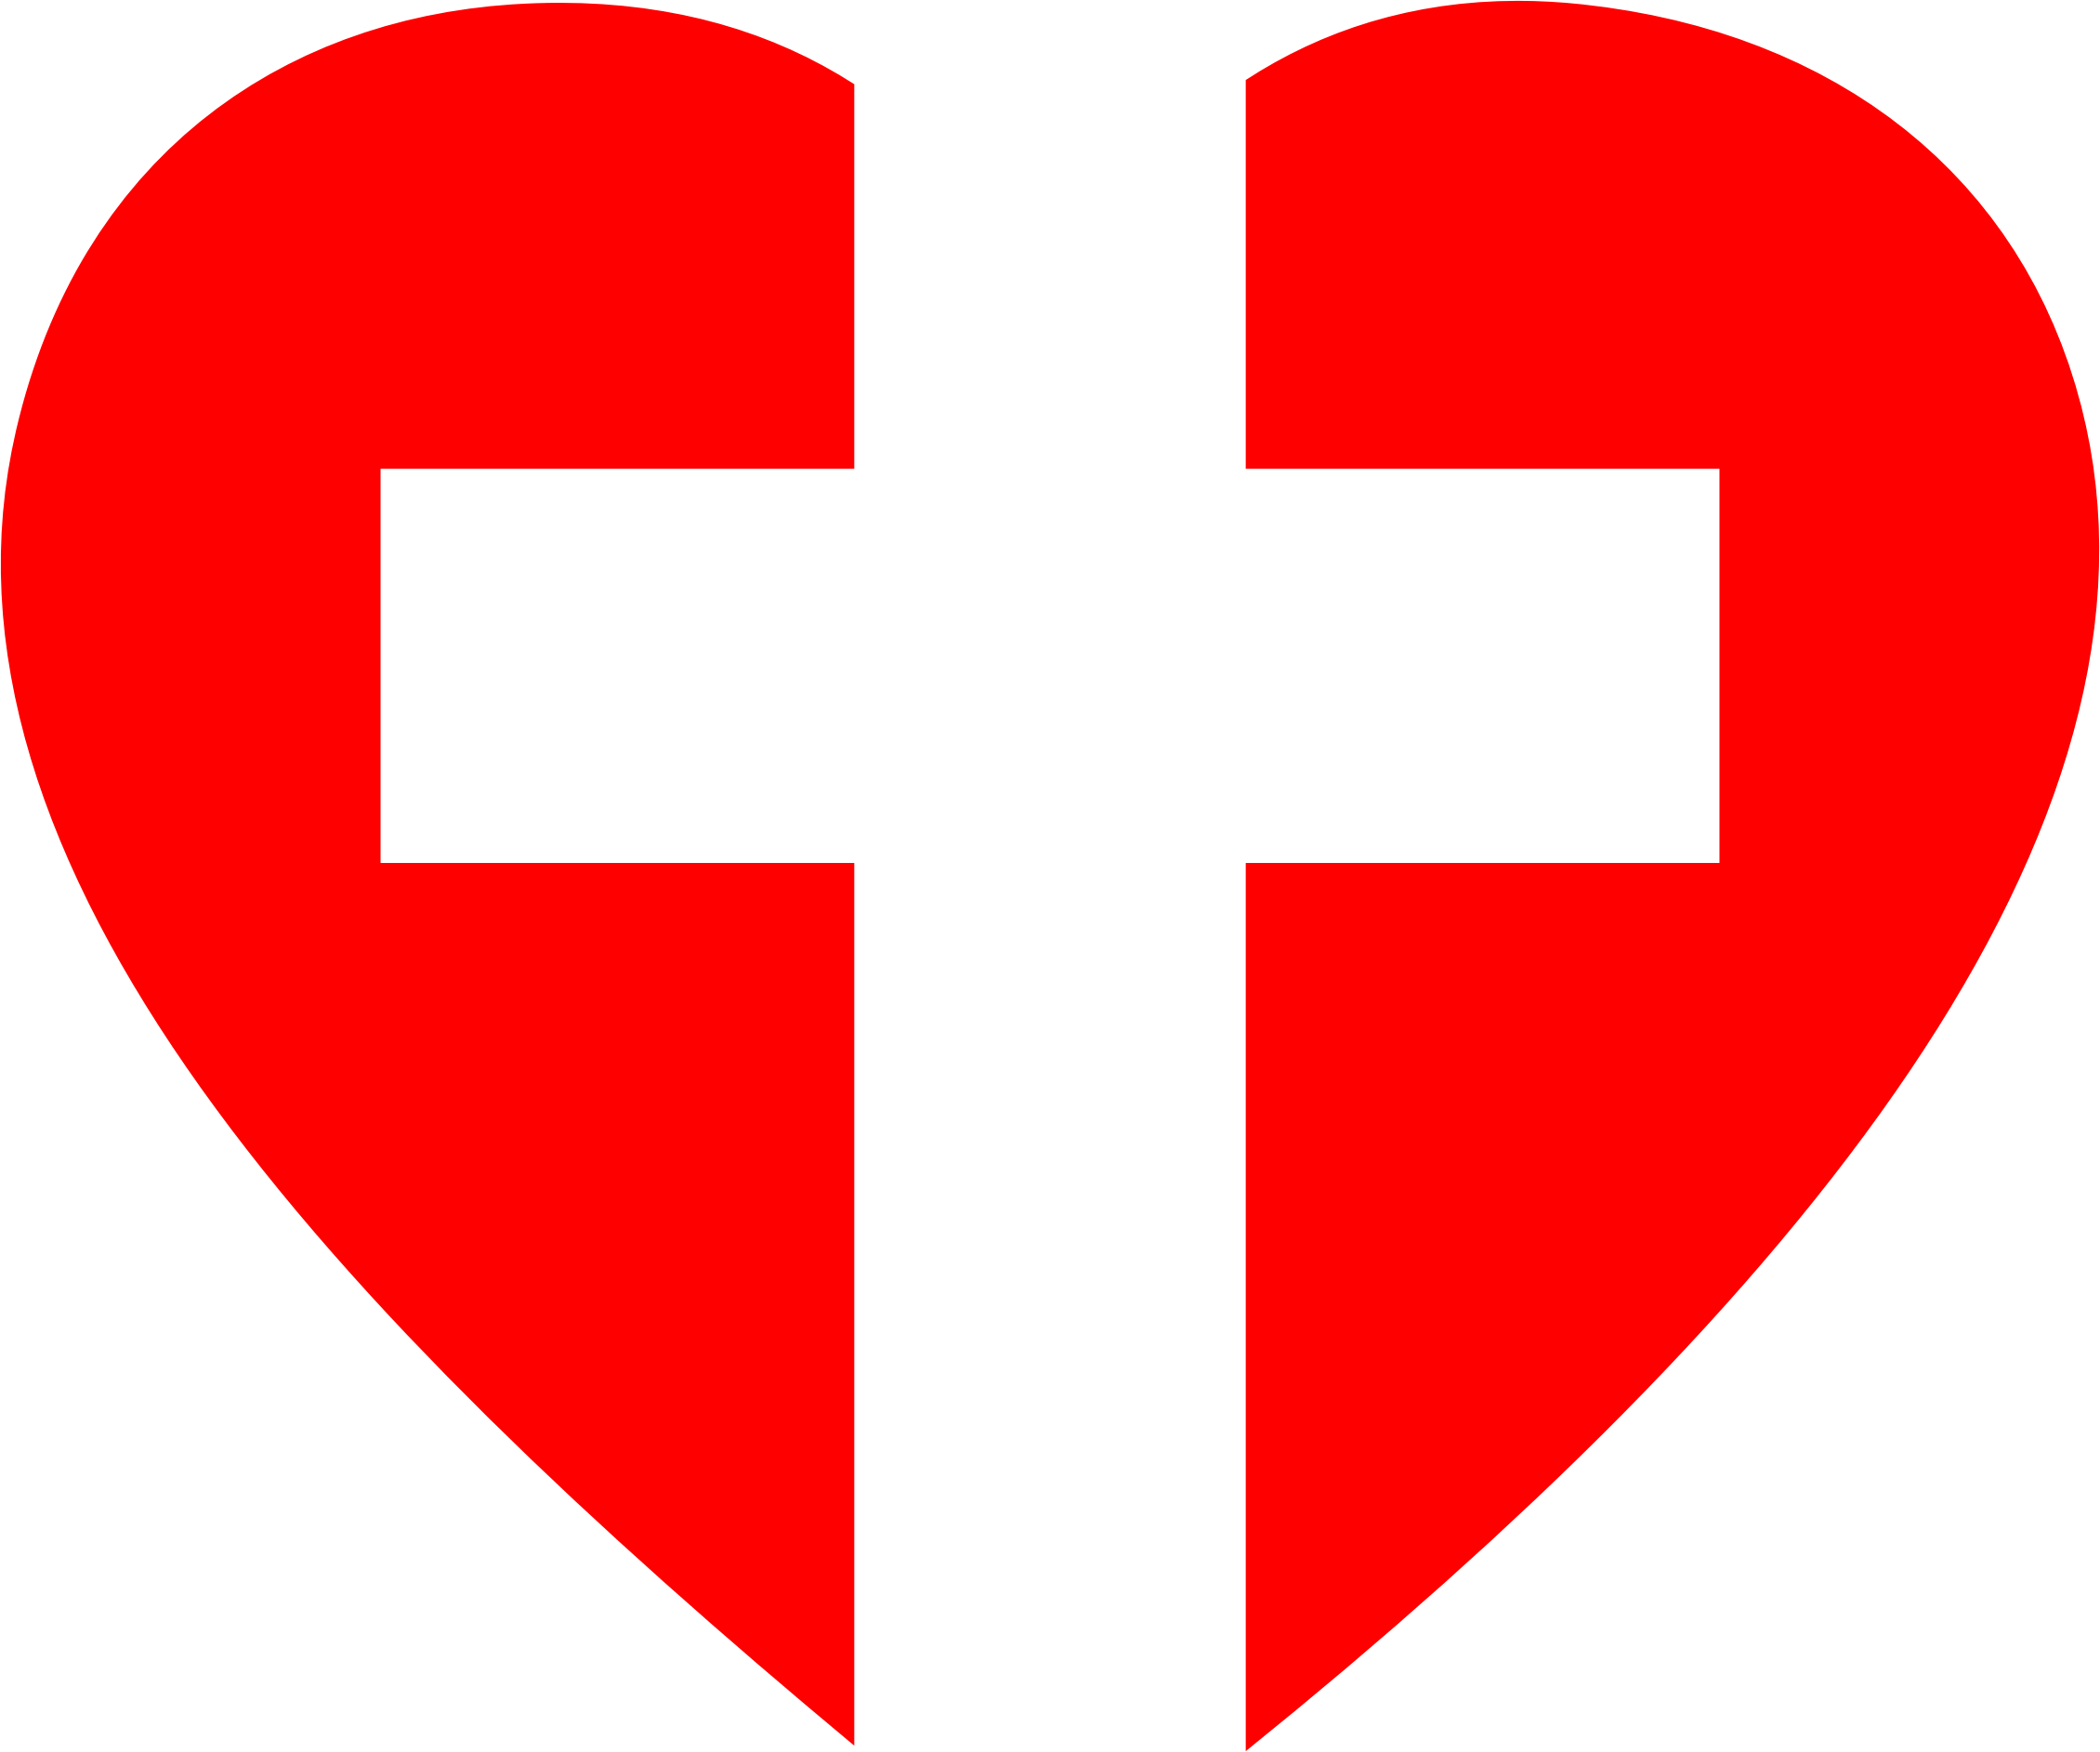 Heart Cross by GDJ